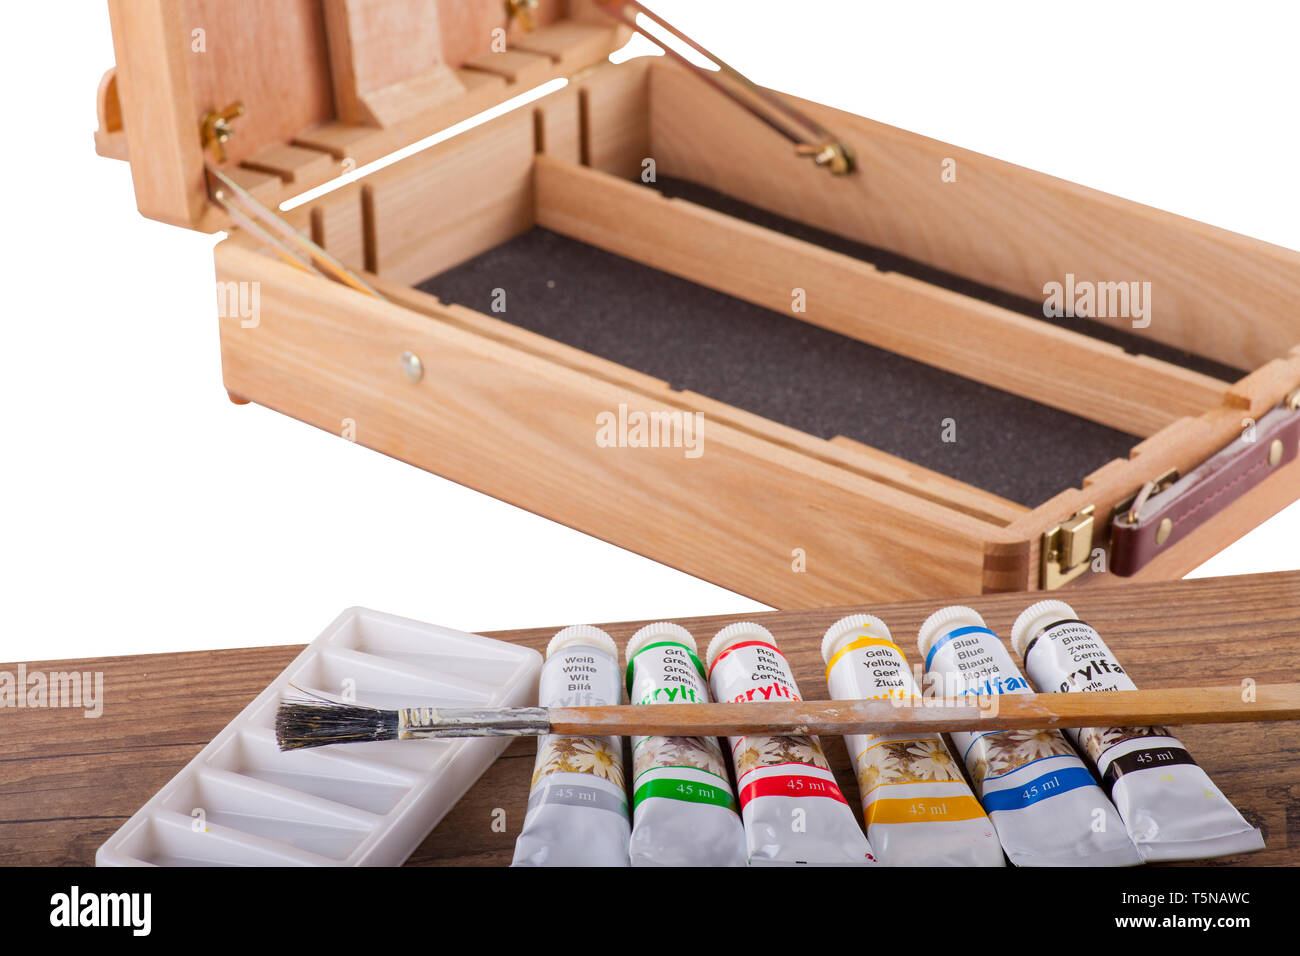 Acrylic paints on an easel - isolated on a white background - Stock Image